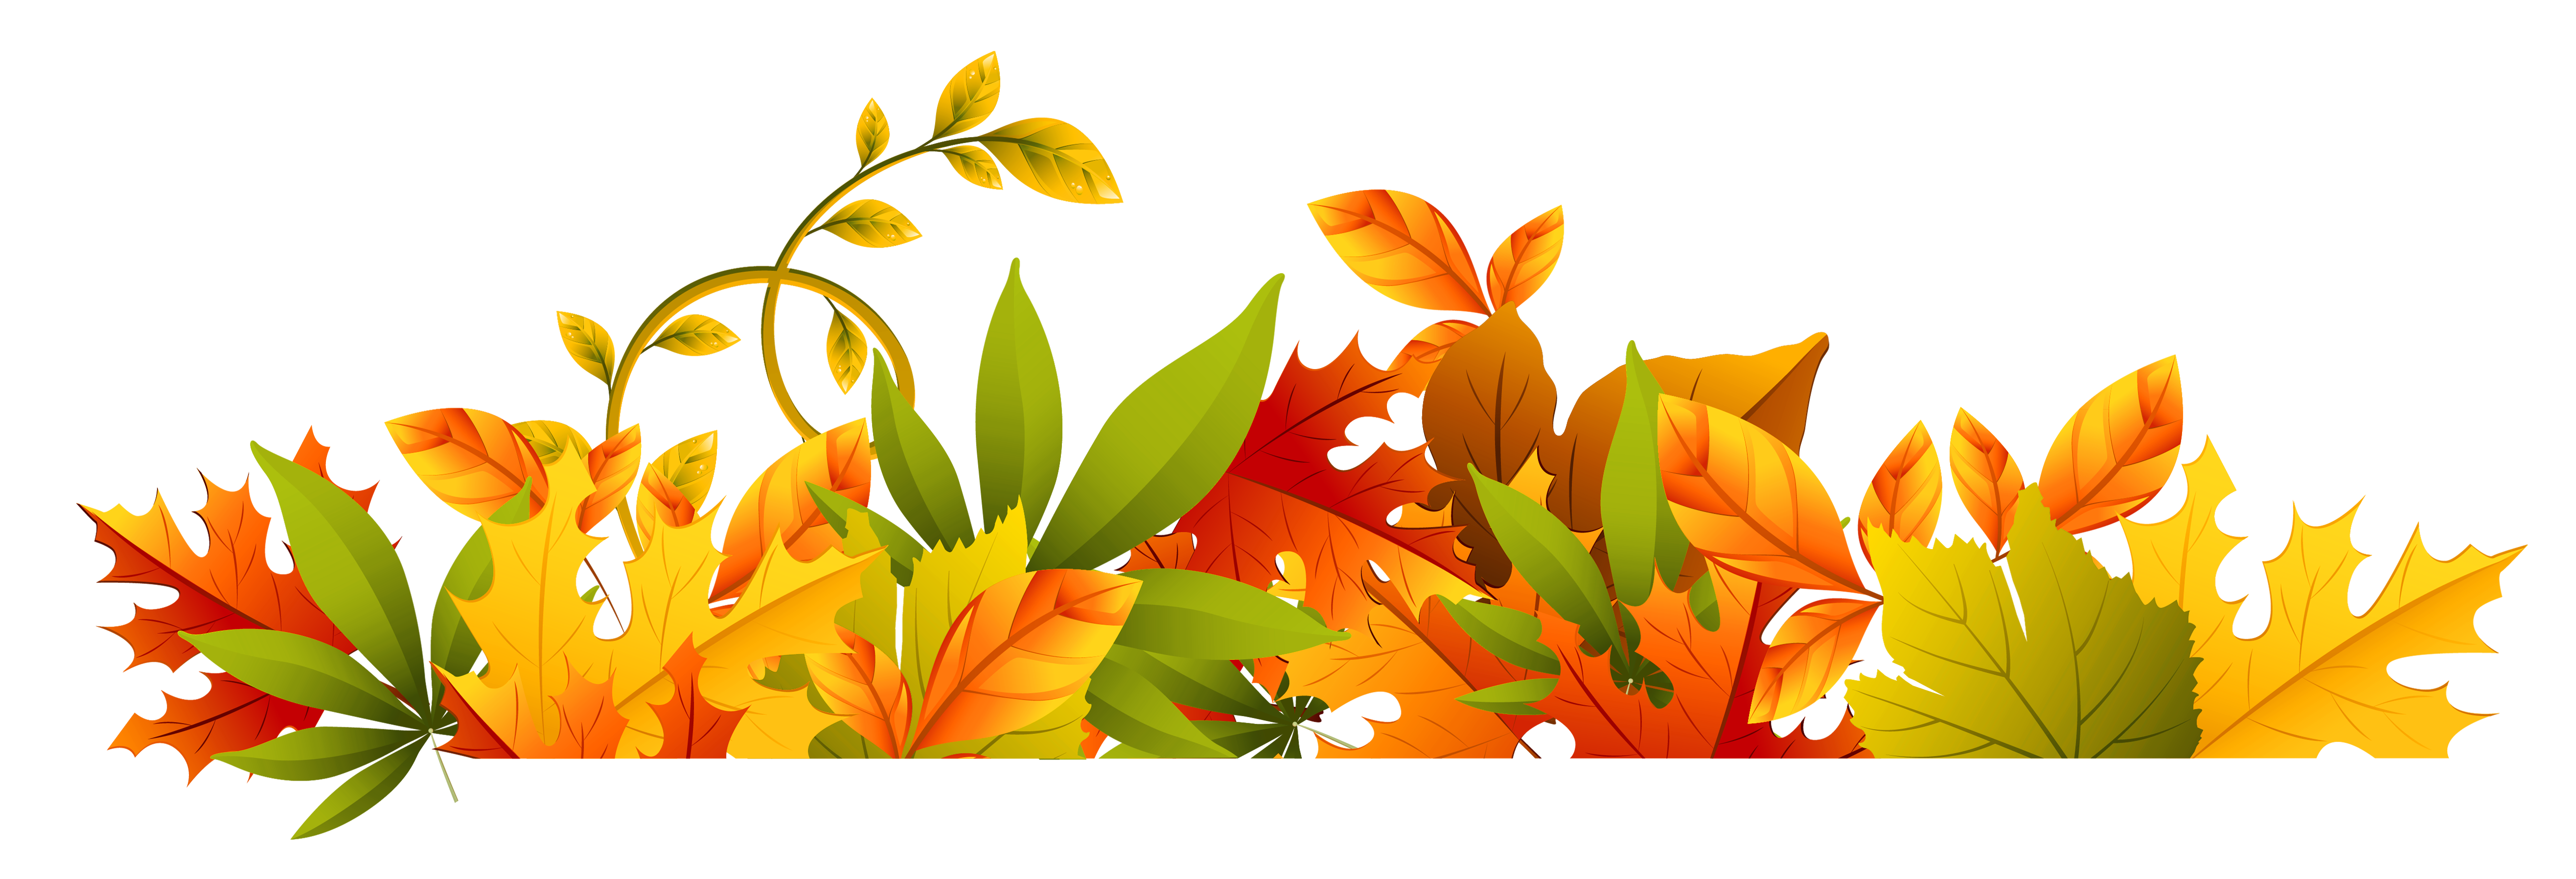 5264x1796 Fall Autumn Clip Art Free Clipart 2 Clipartcow